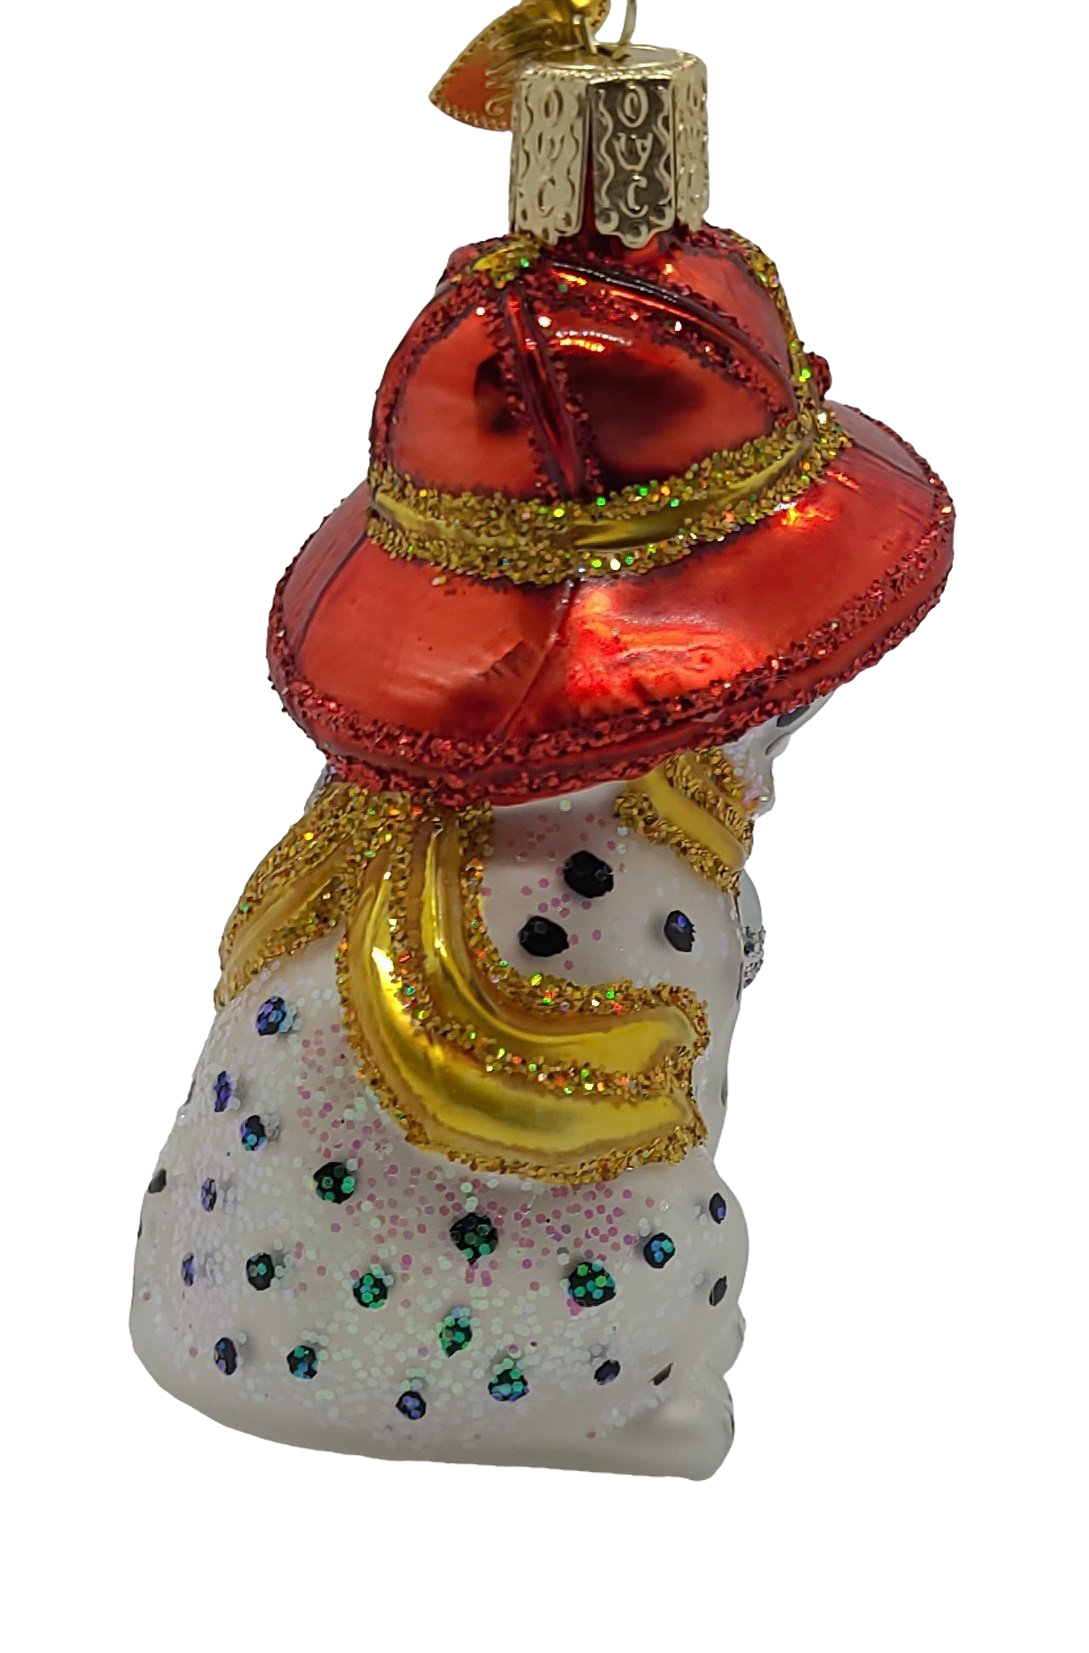 Hanging Blown Glass Dalmatian Pup Christmas Ornament - Schmidt Christmas Market Dekorasyon ng Pasko